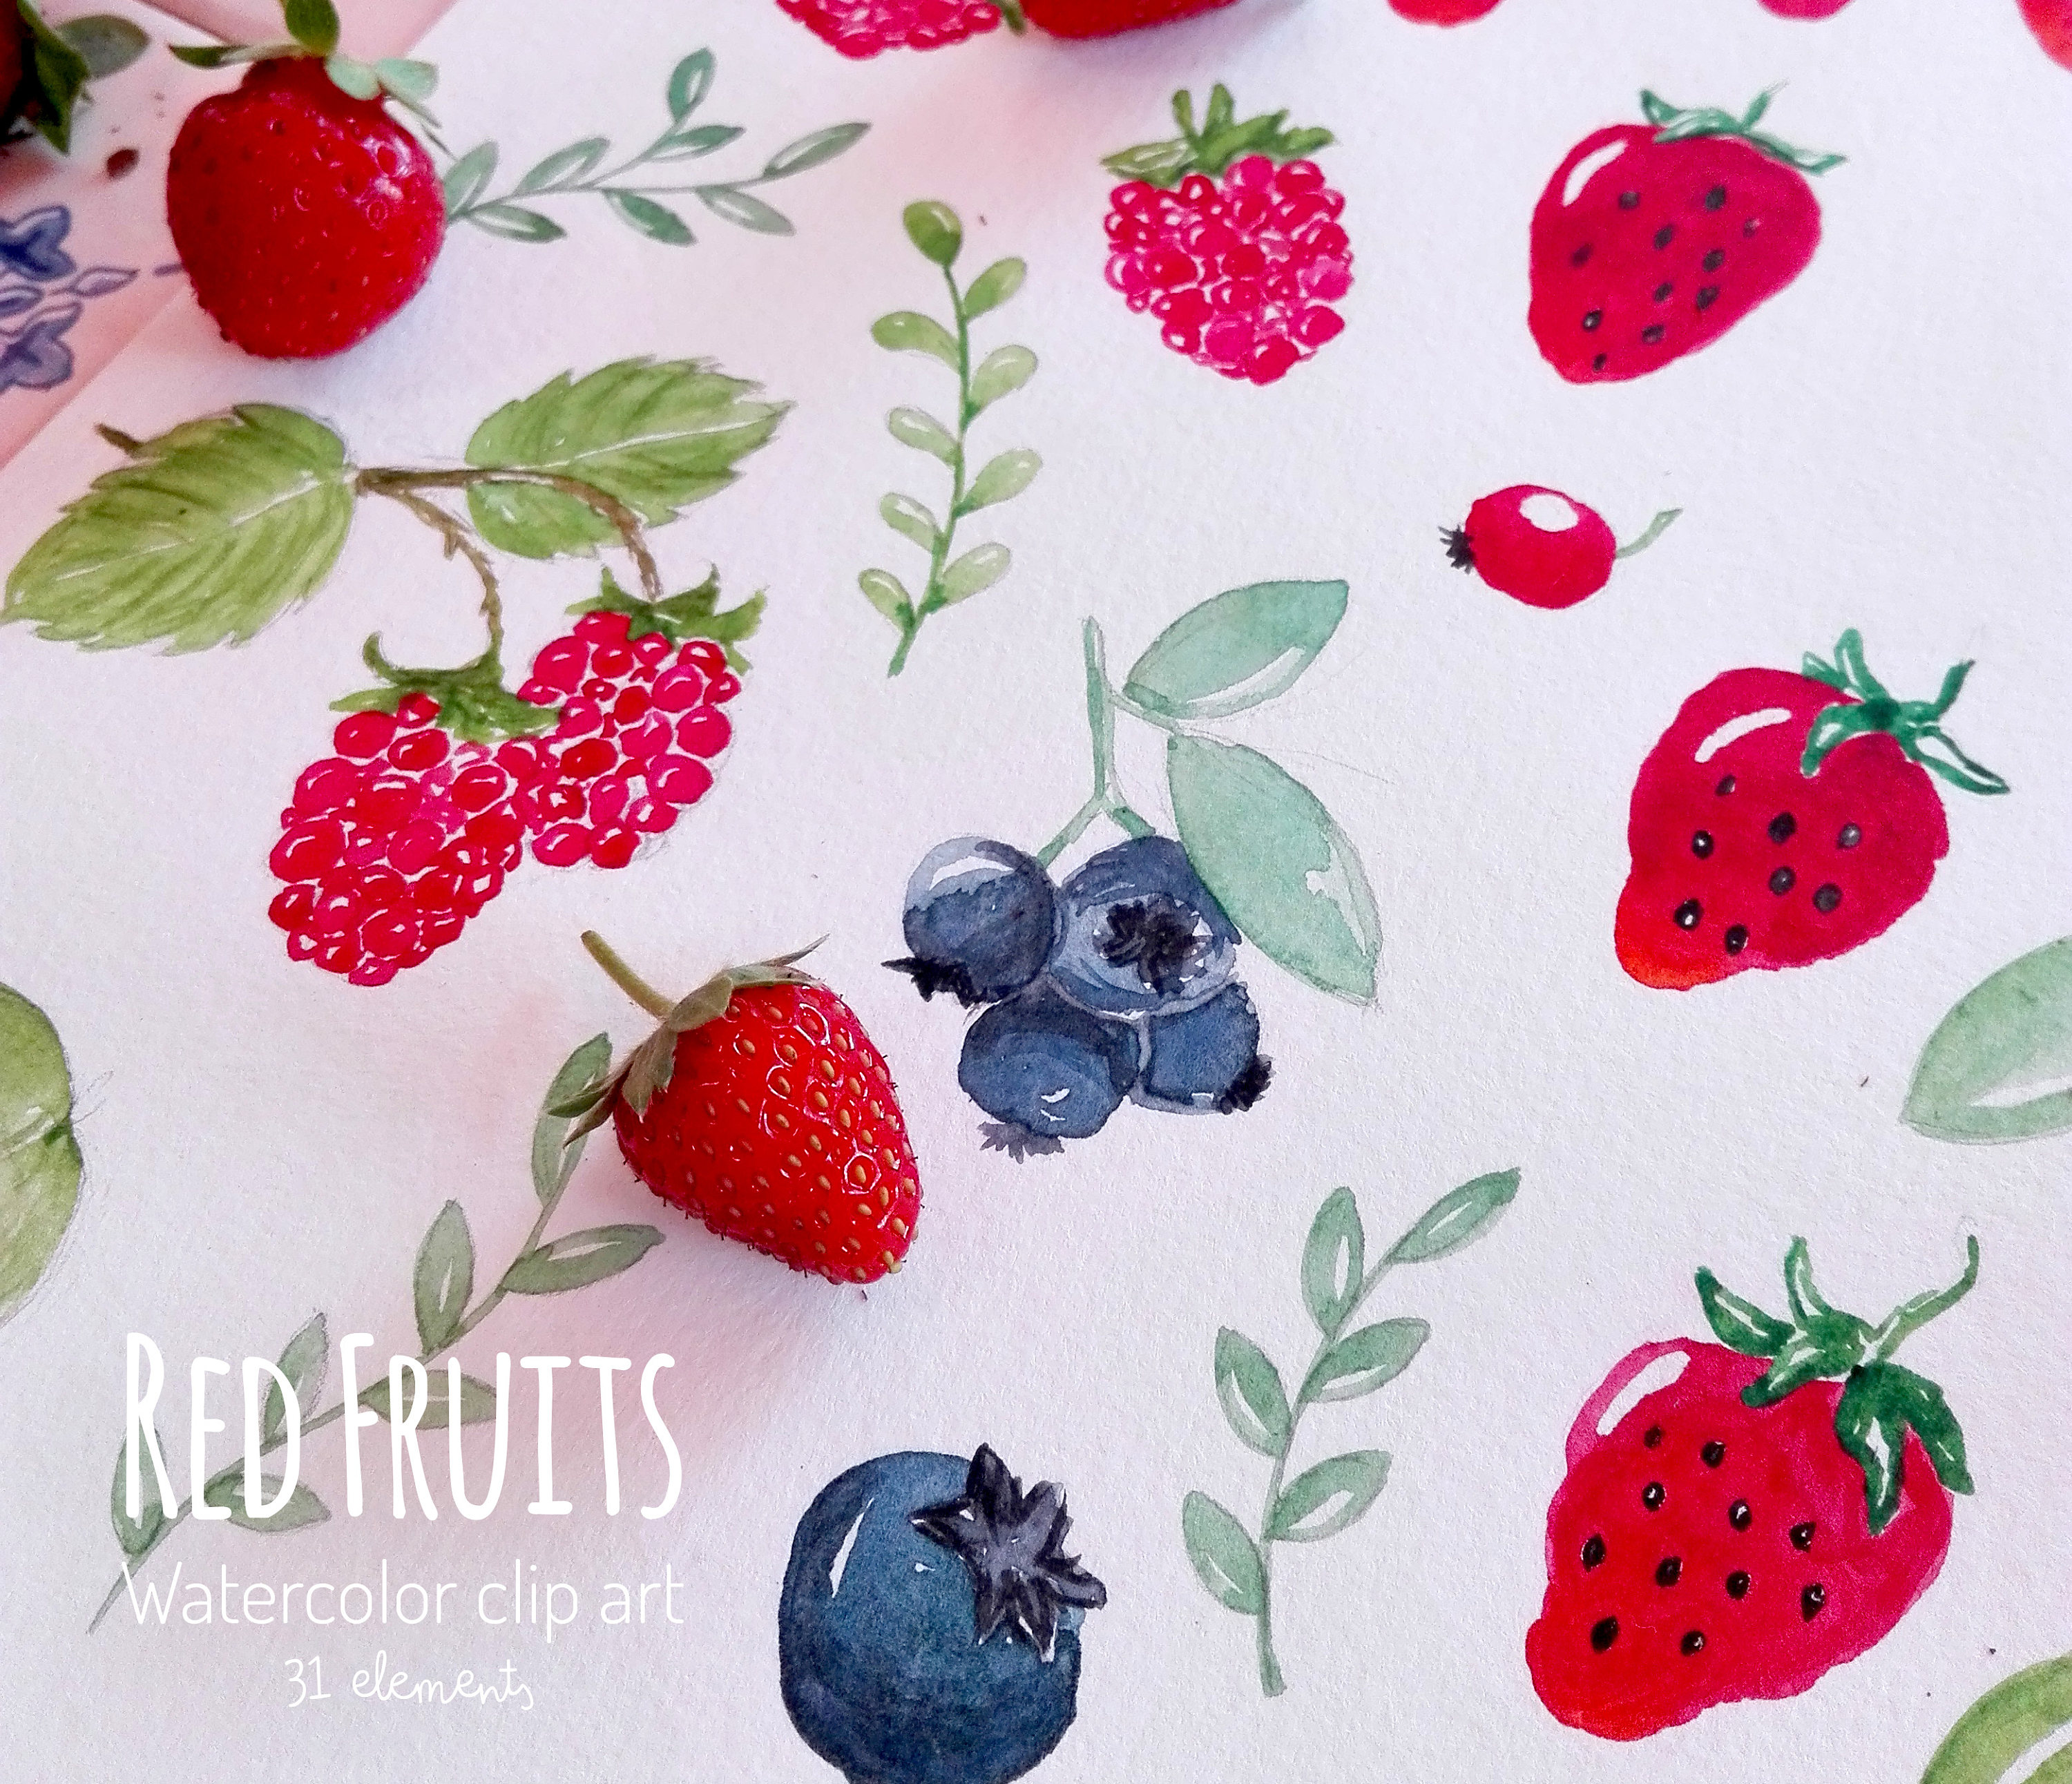 Berries clipart strawberry blueberry. Watercolor fruits clip art